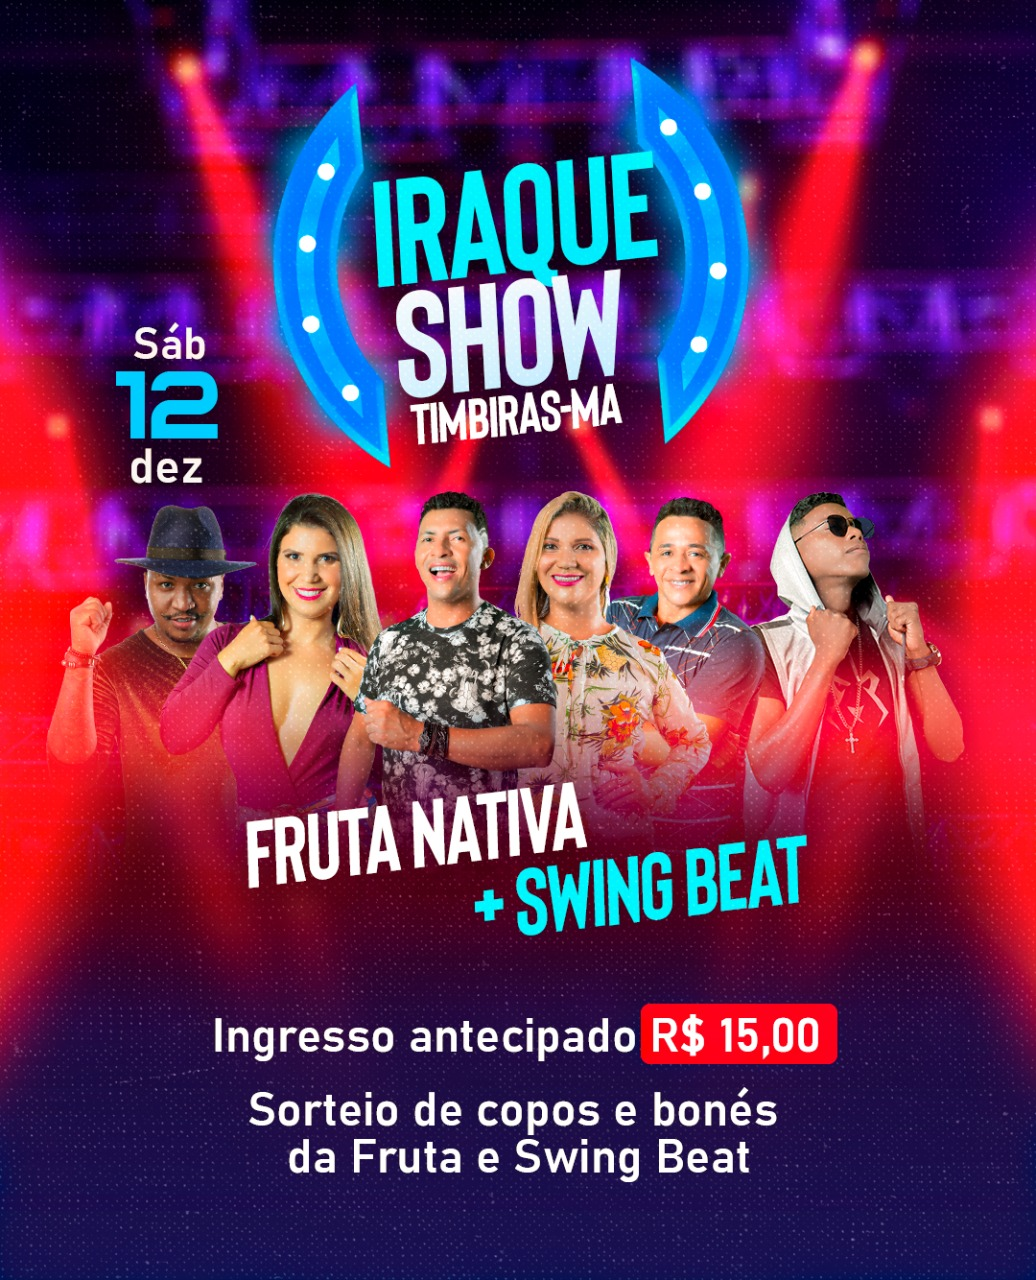 FRUTA NATIVA E SWING BEAT DIA 12 /12